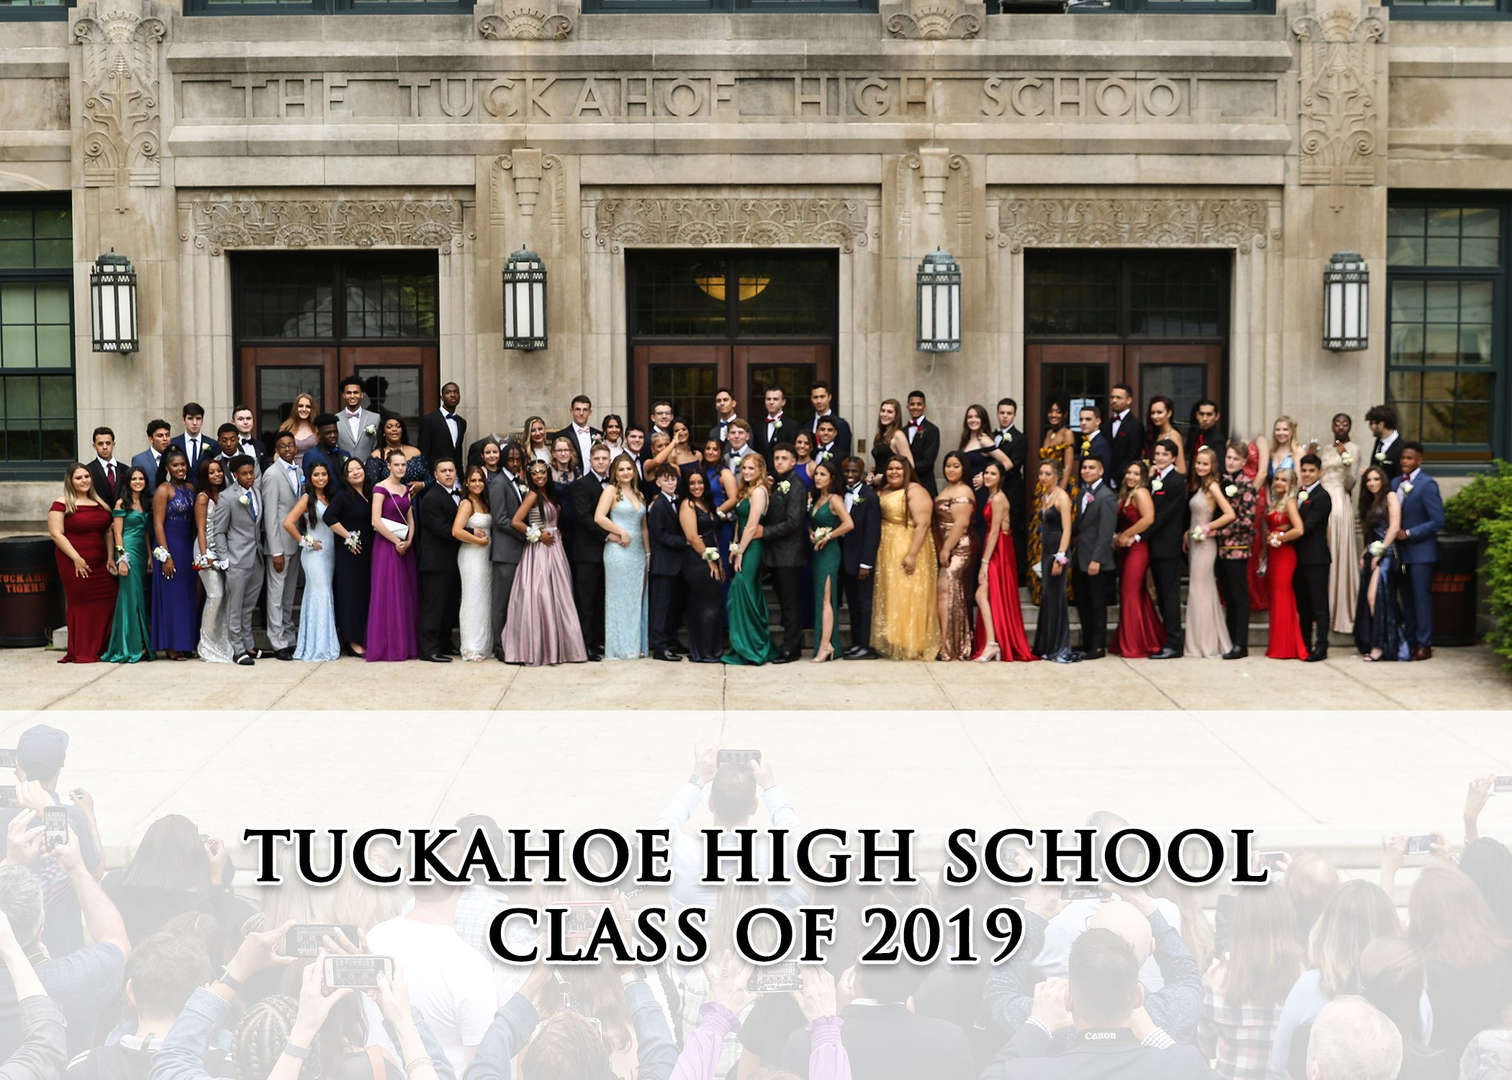 THS Seniors and their guests pose for the 2019 Prom in front of The Tuckahoe High School